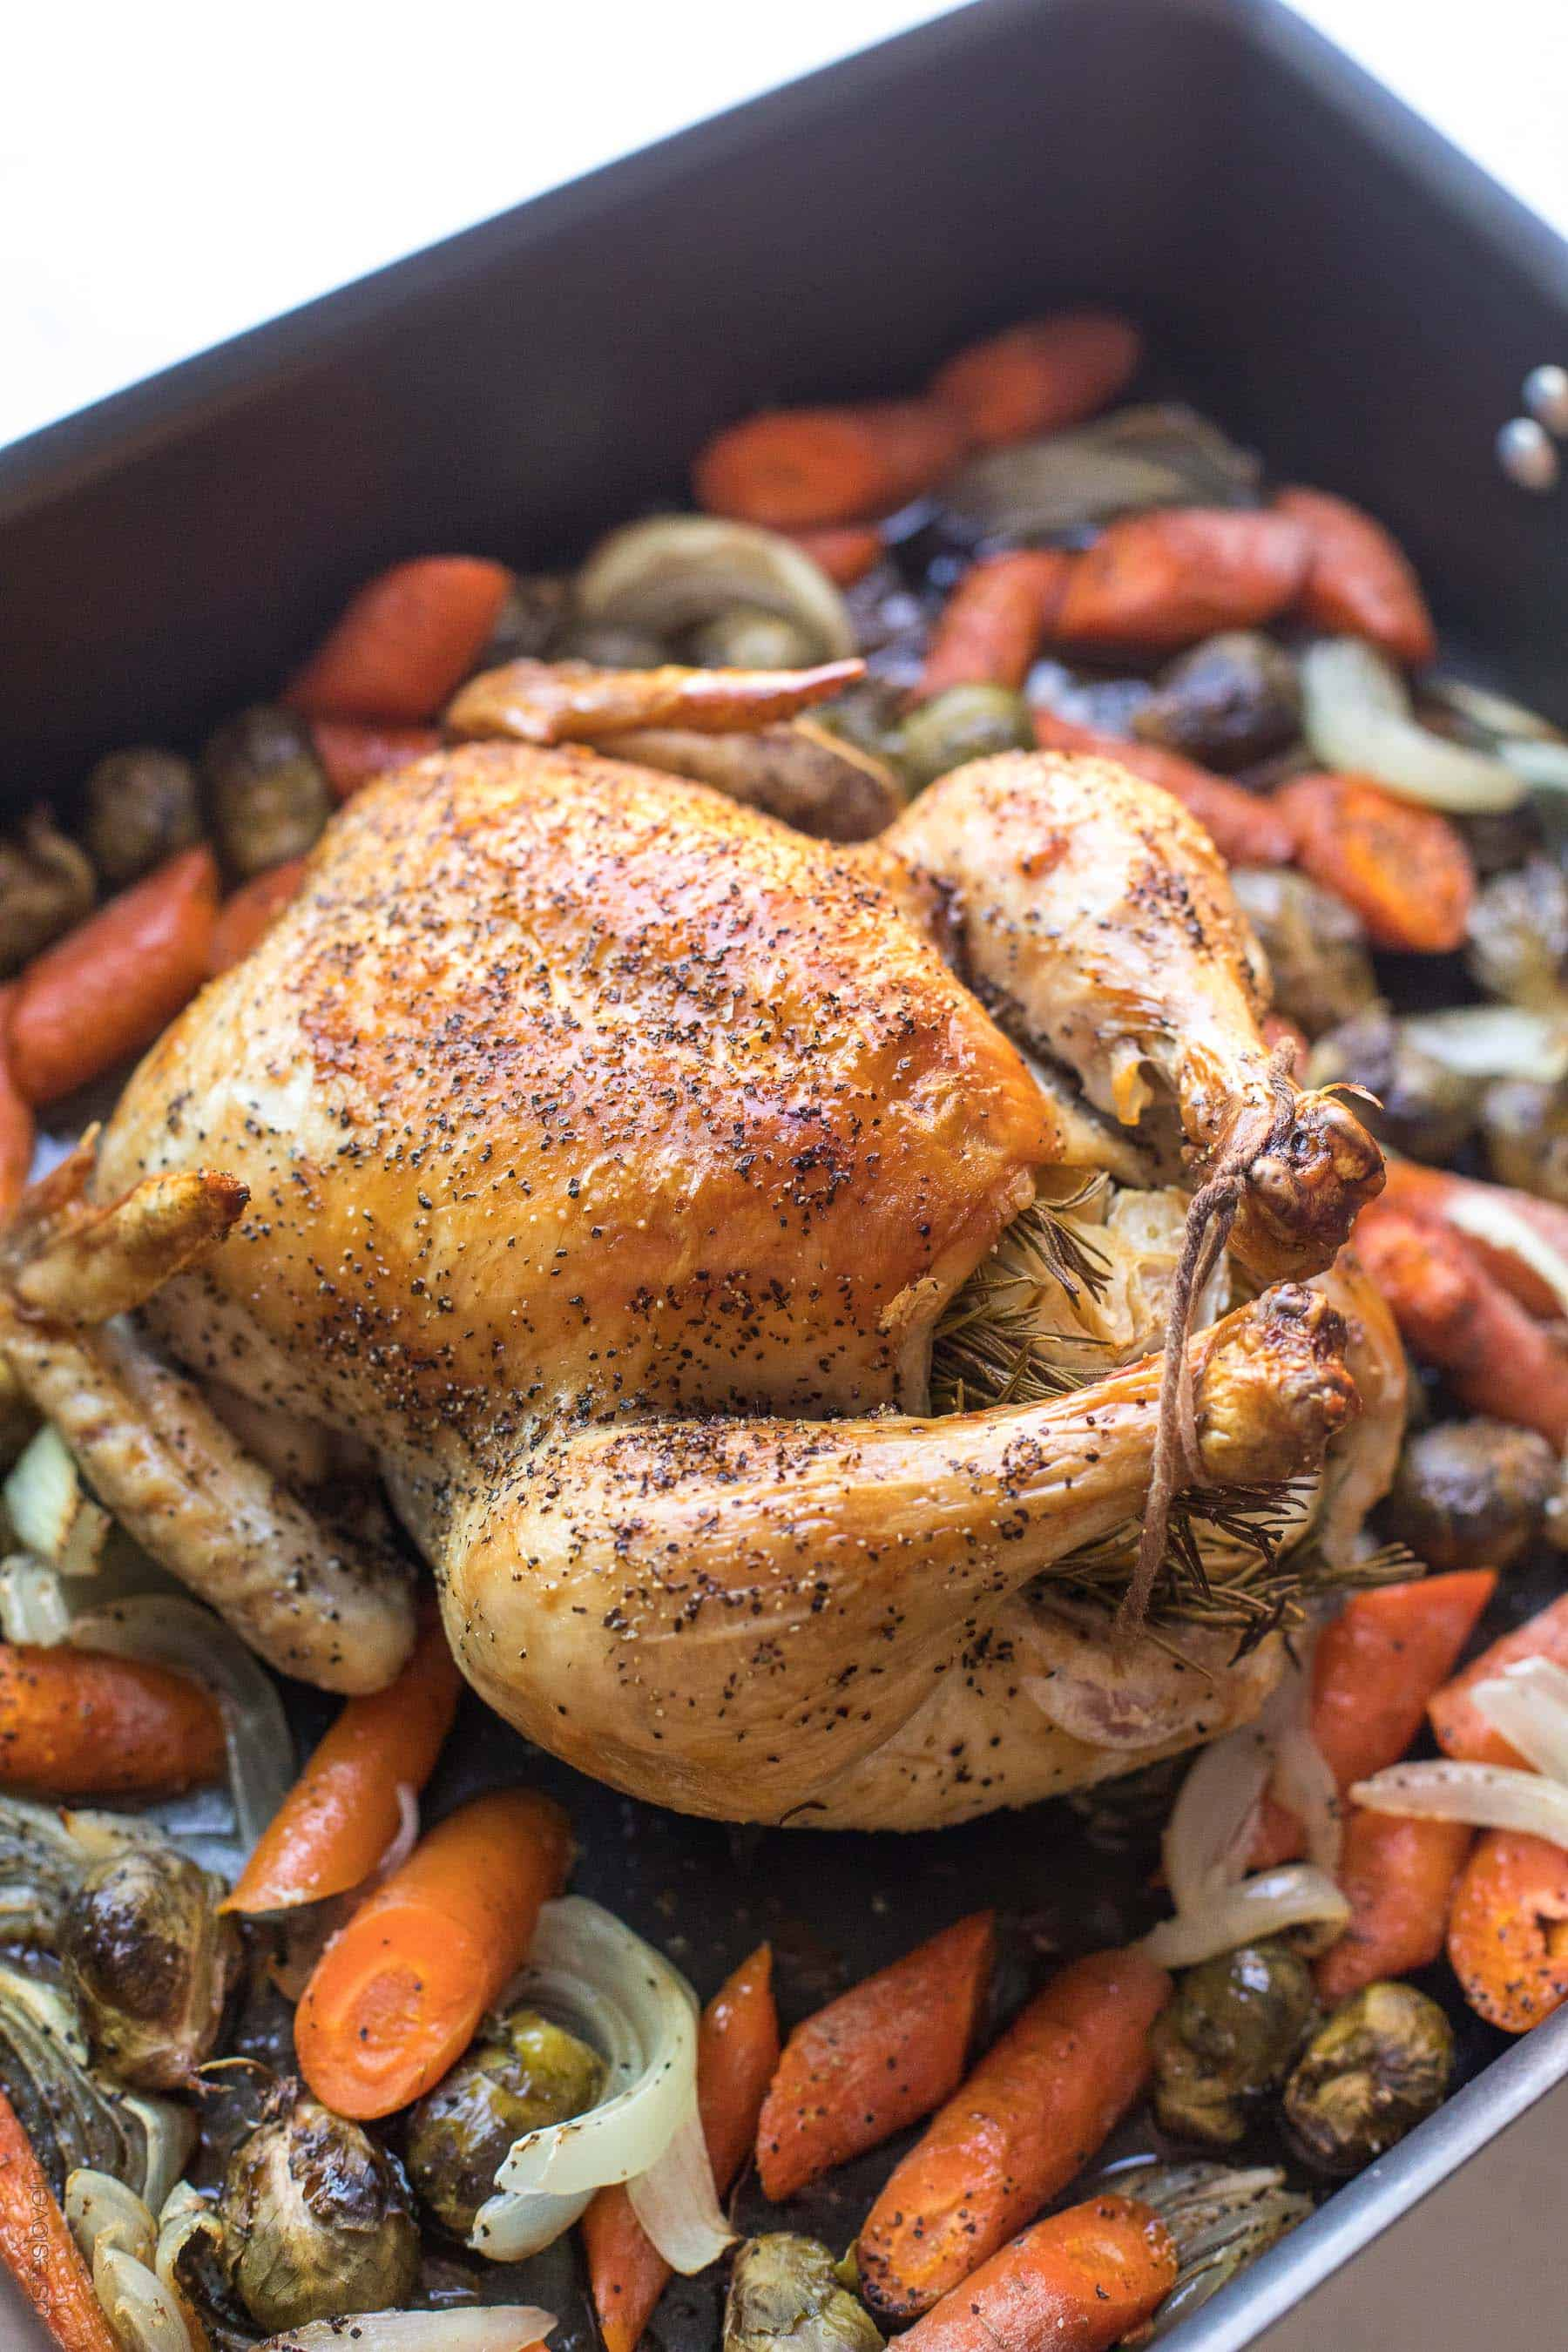 Roast chicken in a roasting pan over root vegetables